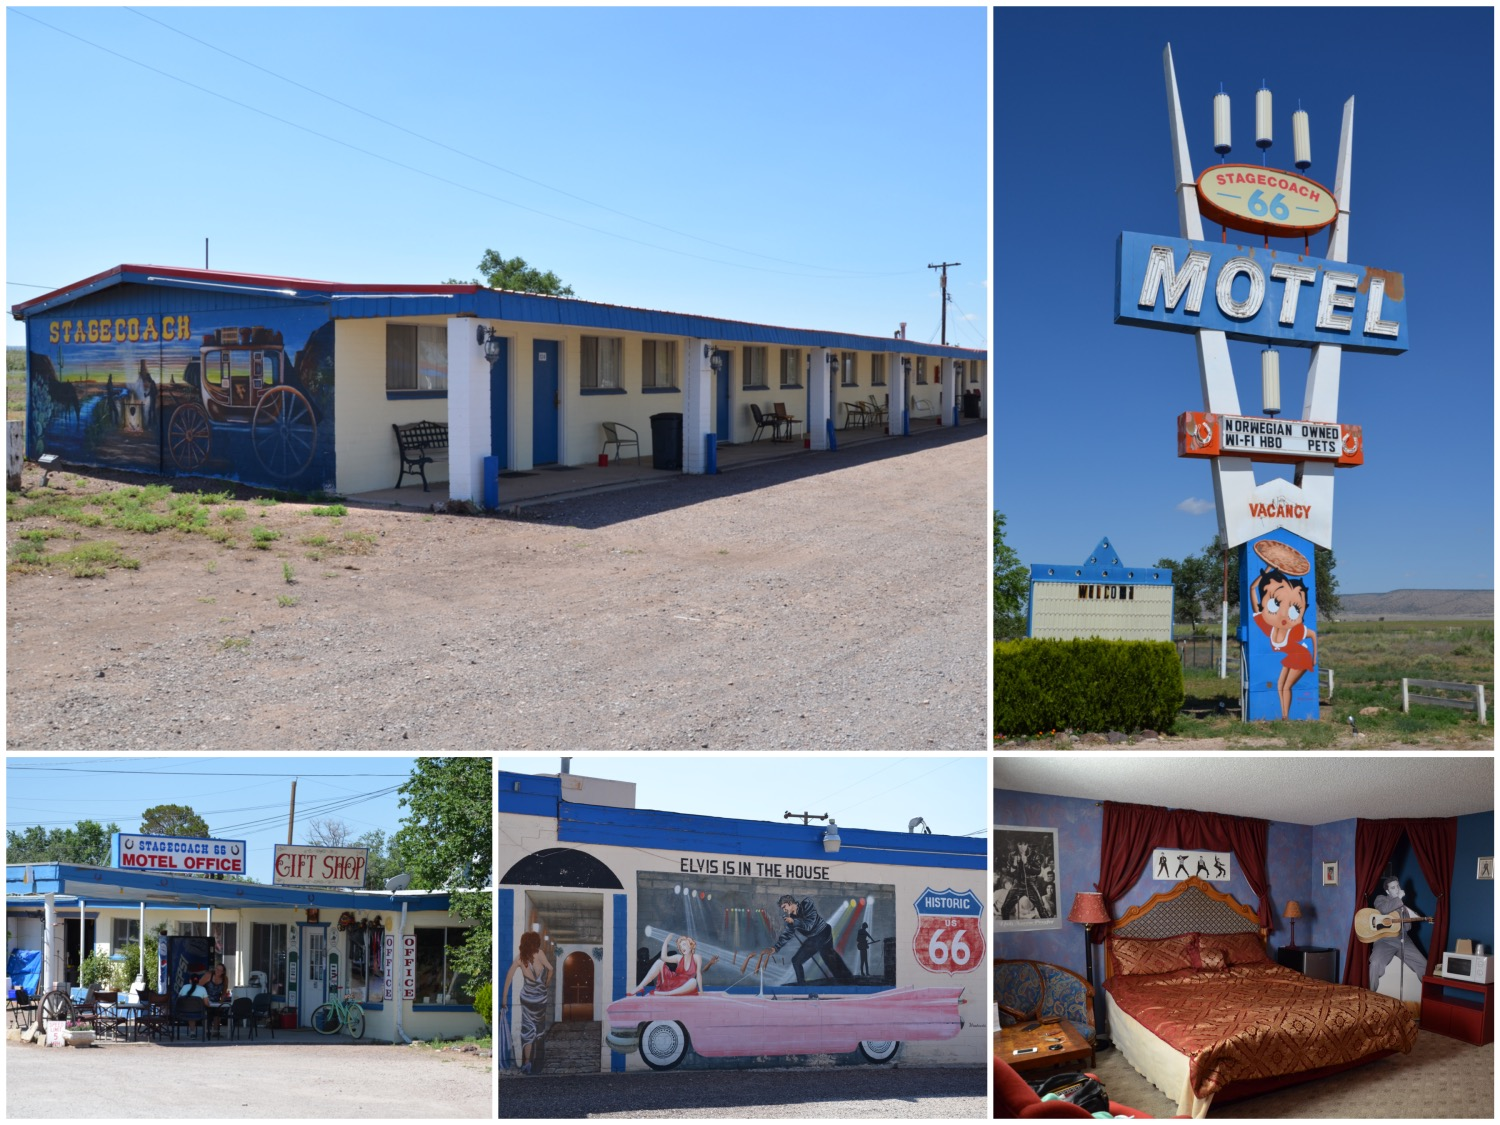 Stage Coach Motel in Seligman, Arizona